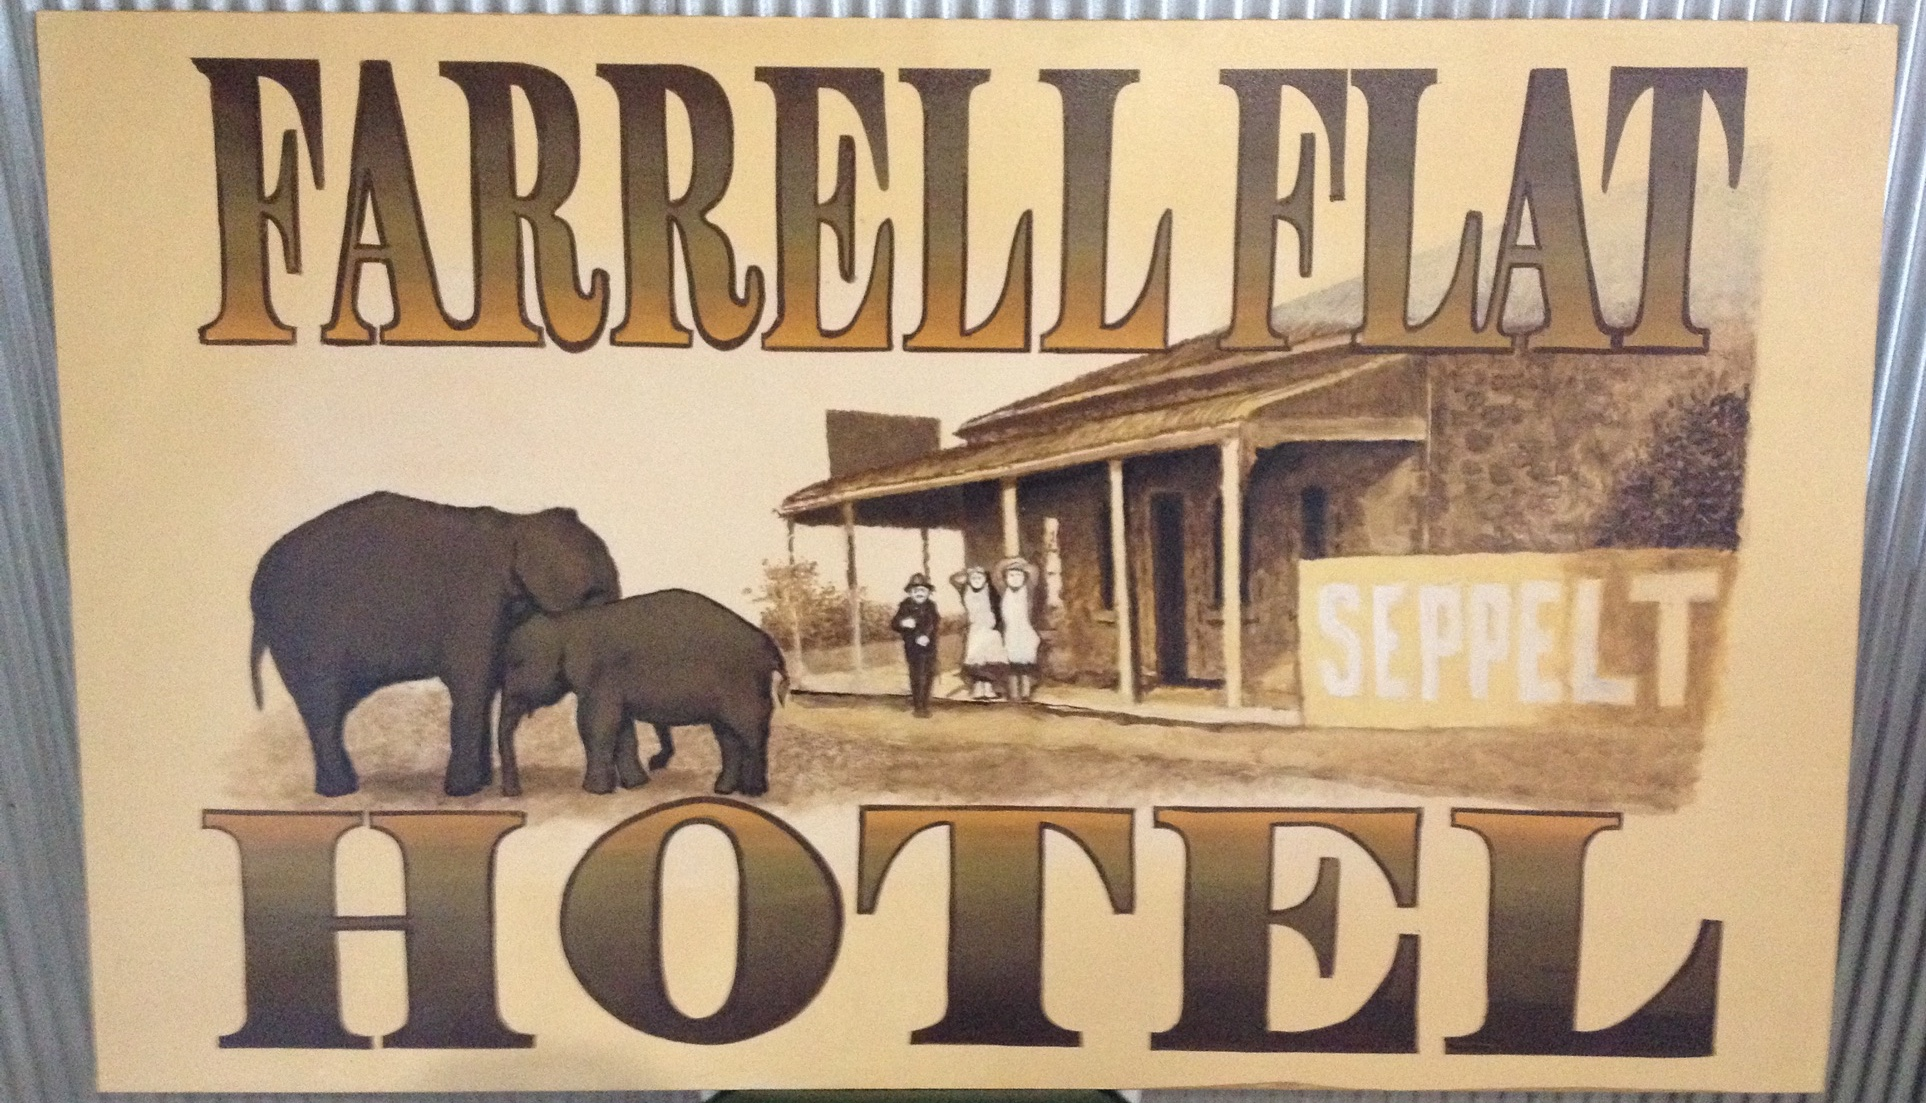 Farrell Flat Hotel South Australia - Accommodation Adelaide